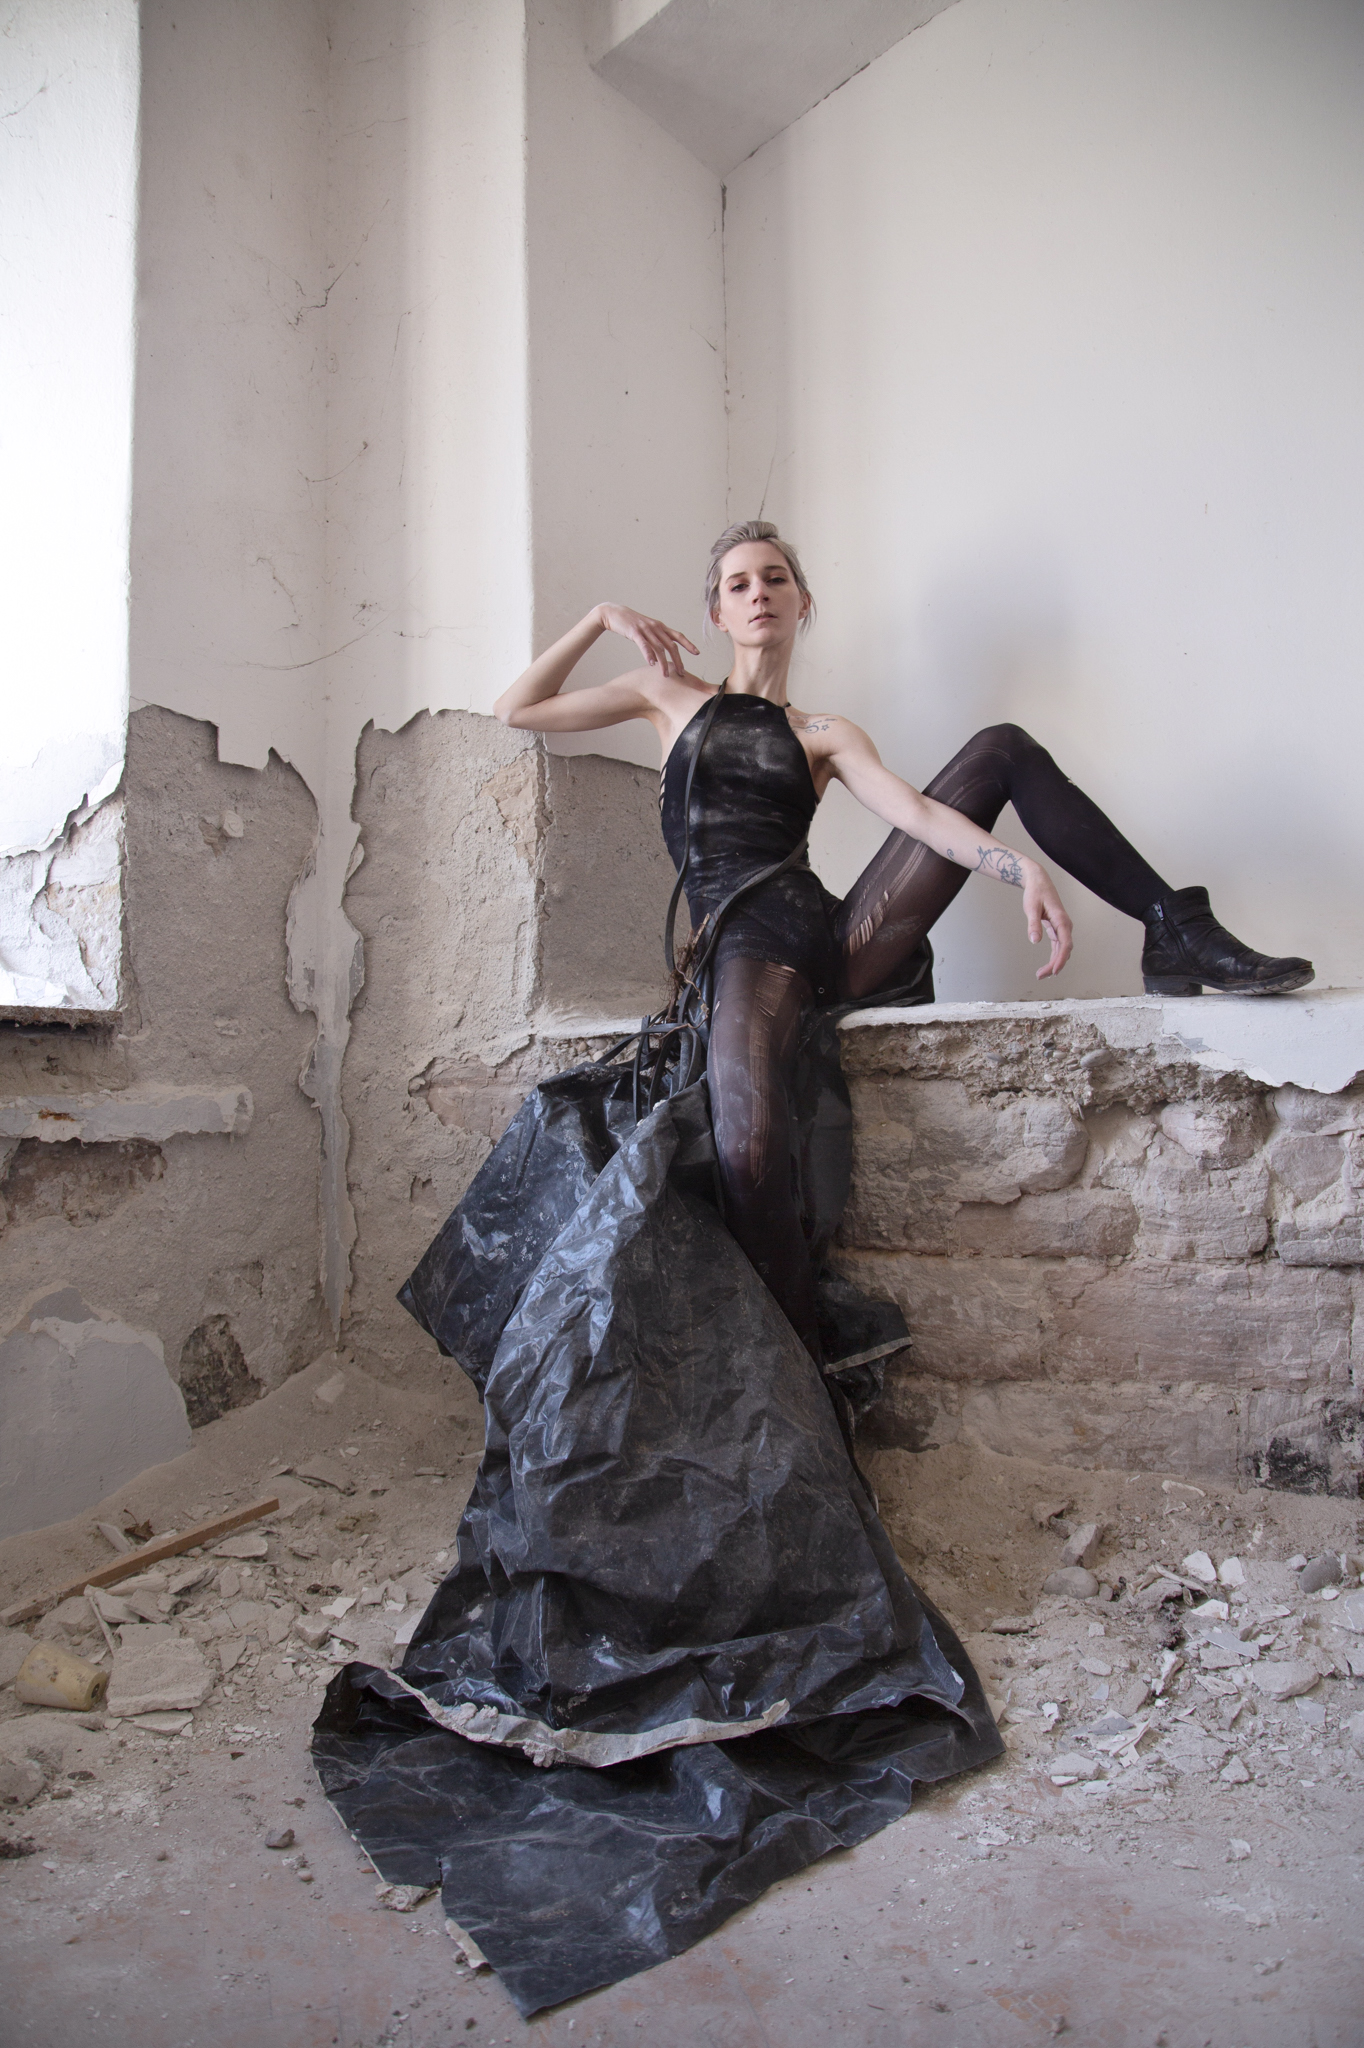 Roxx, shot by Redd, in an abandoned building, wearing a dress constructed from plastic tarp and rope sourced on site. Pula, Croatia